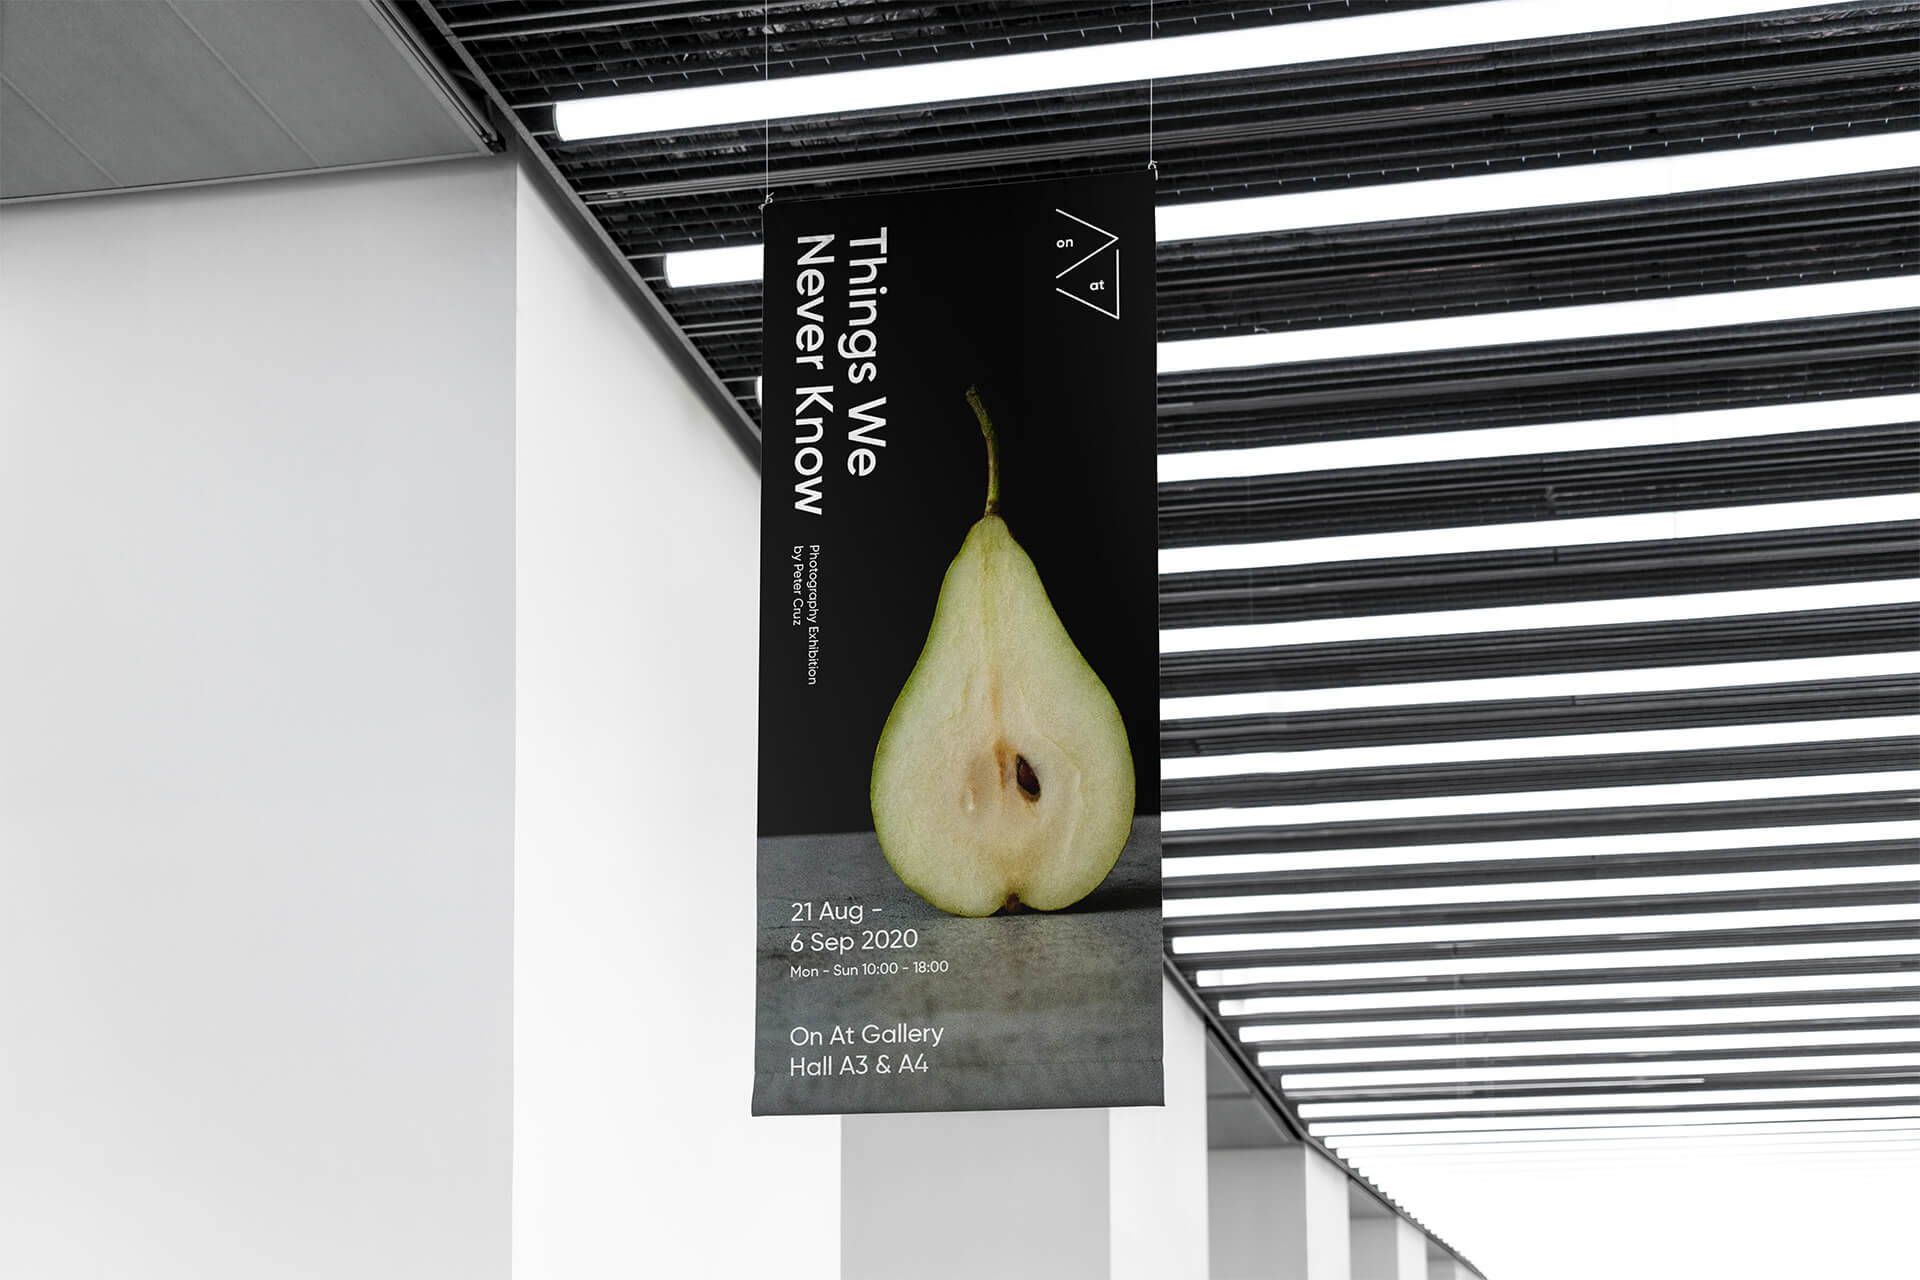 On At Gallery Banner Design